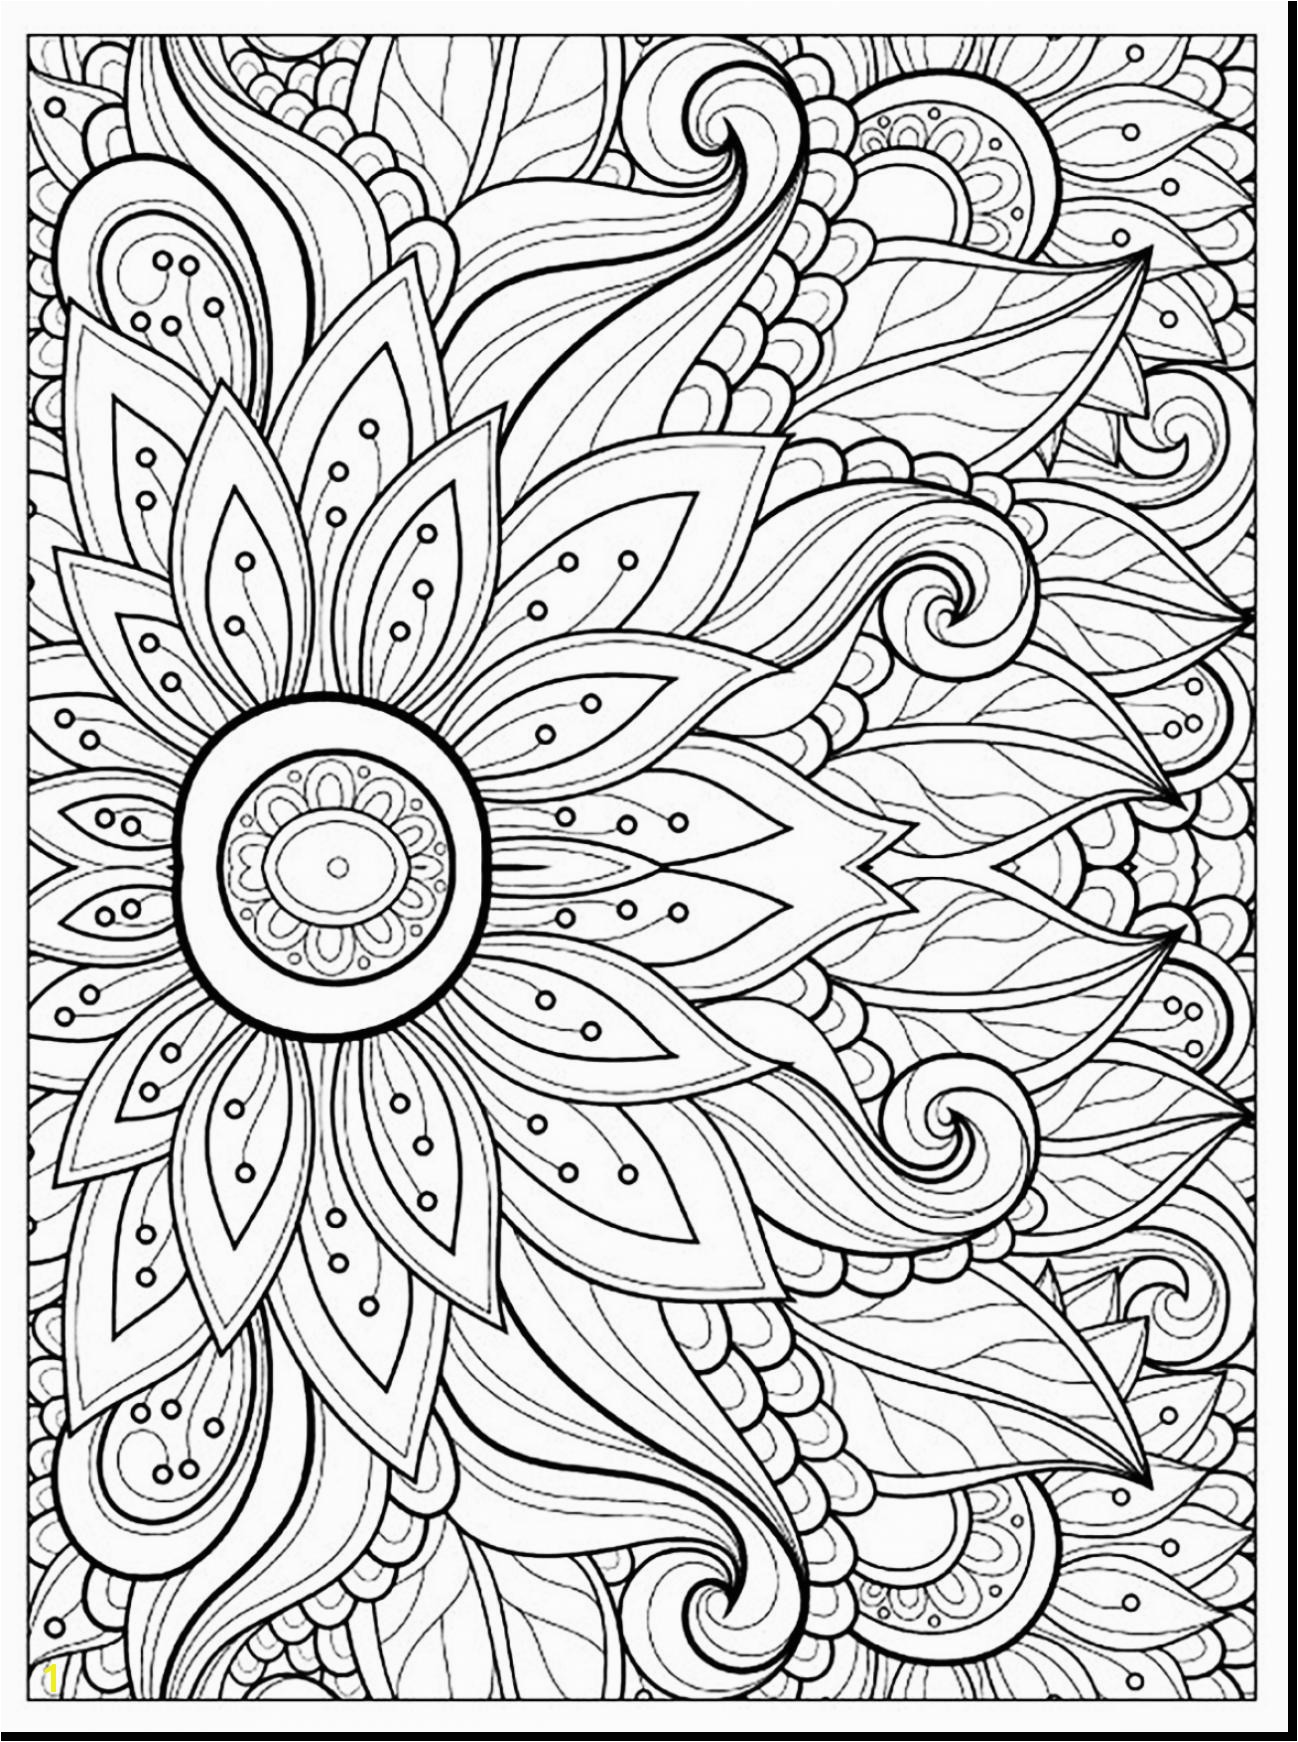 Abstract Coloring Pages for Adults Fresh Cool Vases Flower Vase Coloring Page Pages Flowers In A